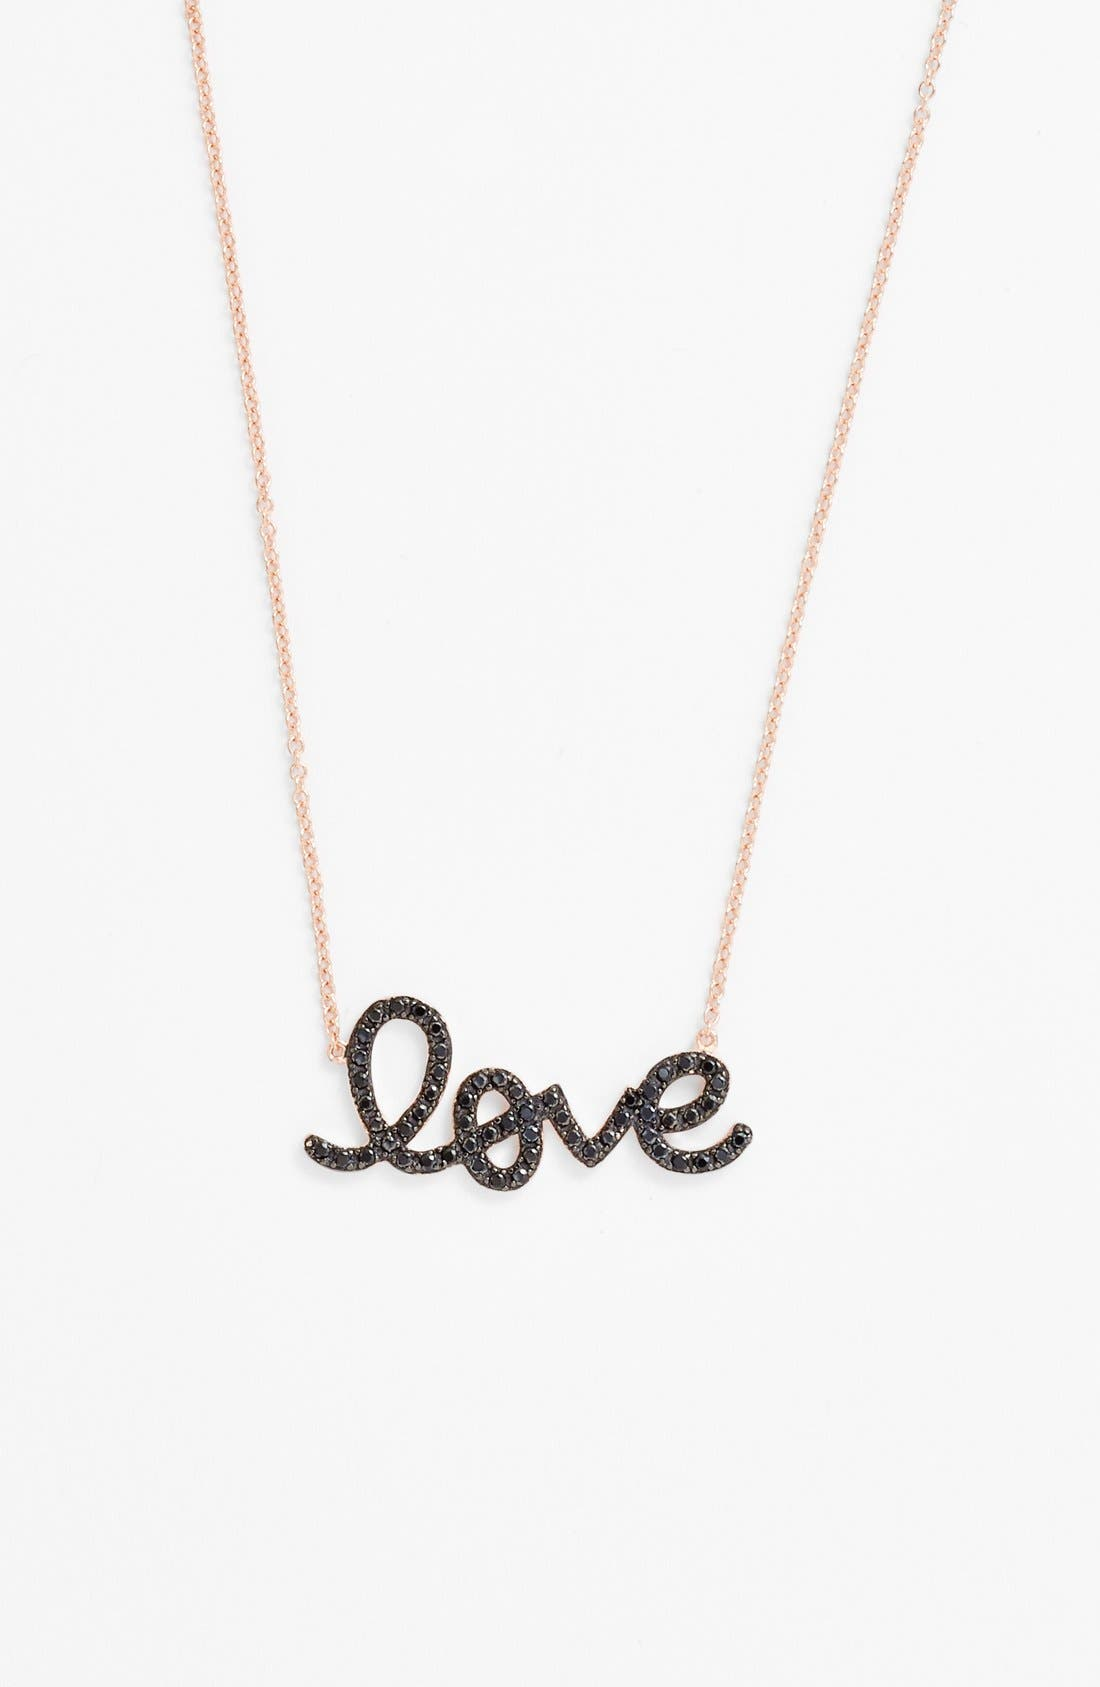 Alternate Image 1 Selected - Sugar Bean Jewelry 'Love' Pendant Necklace